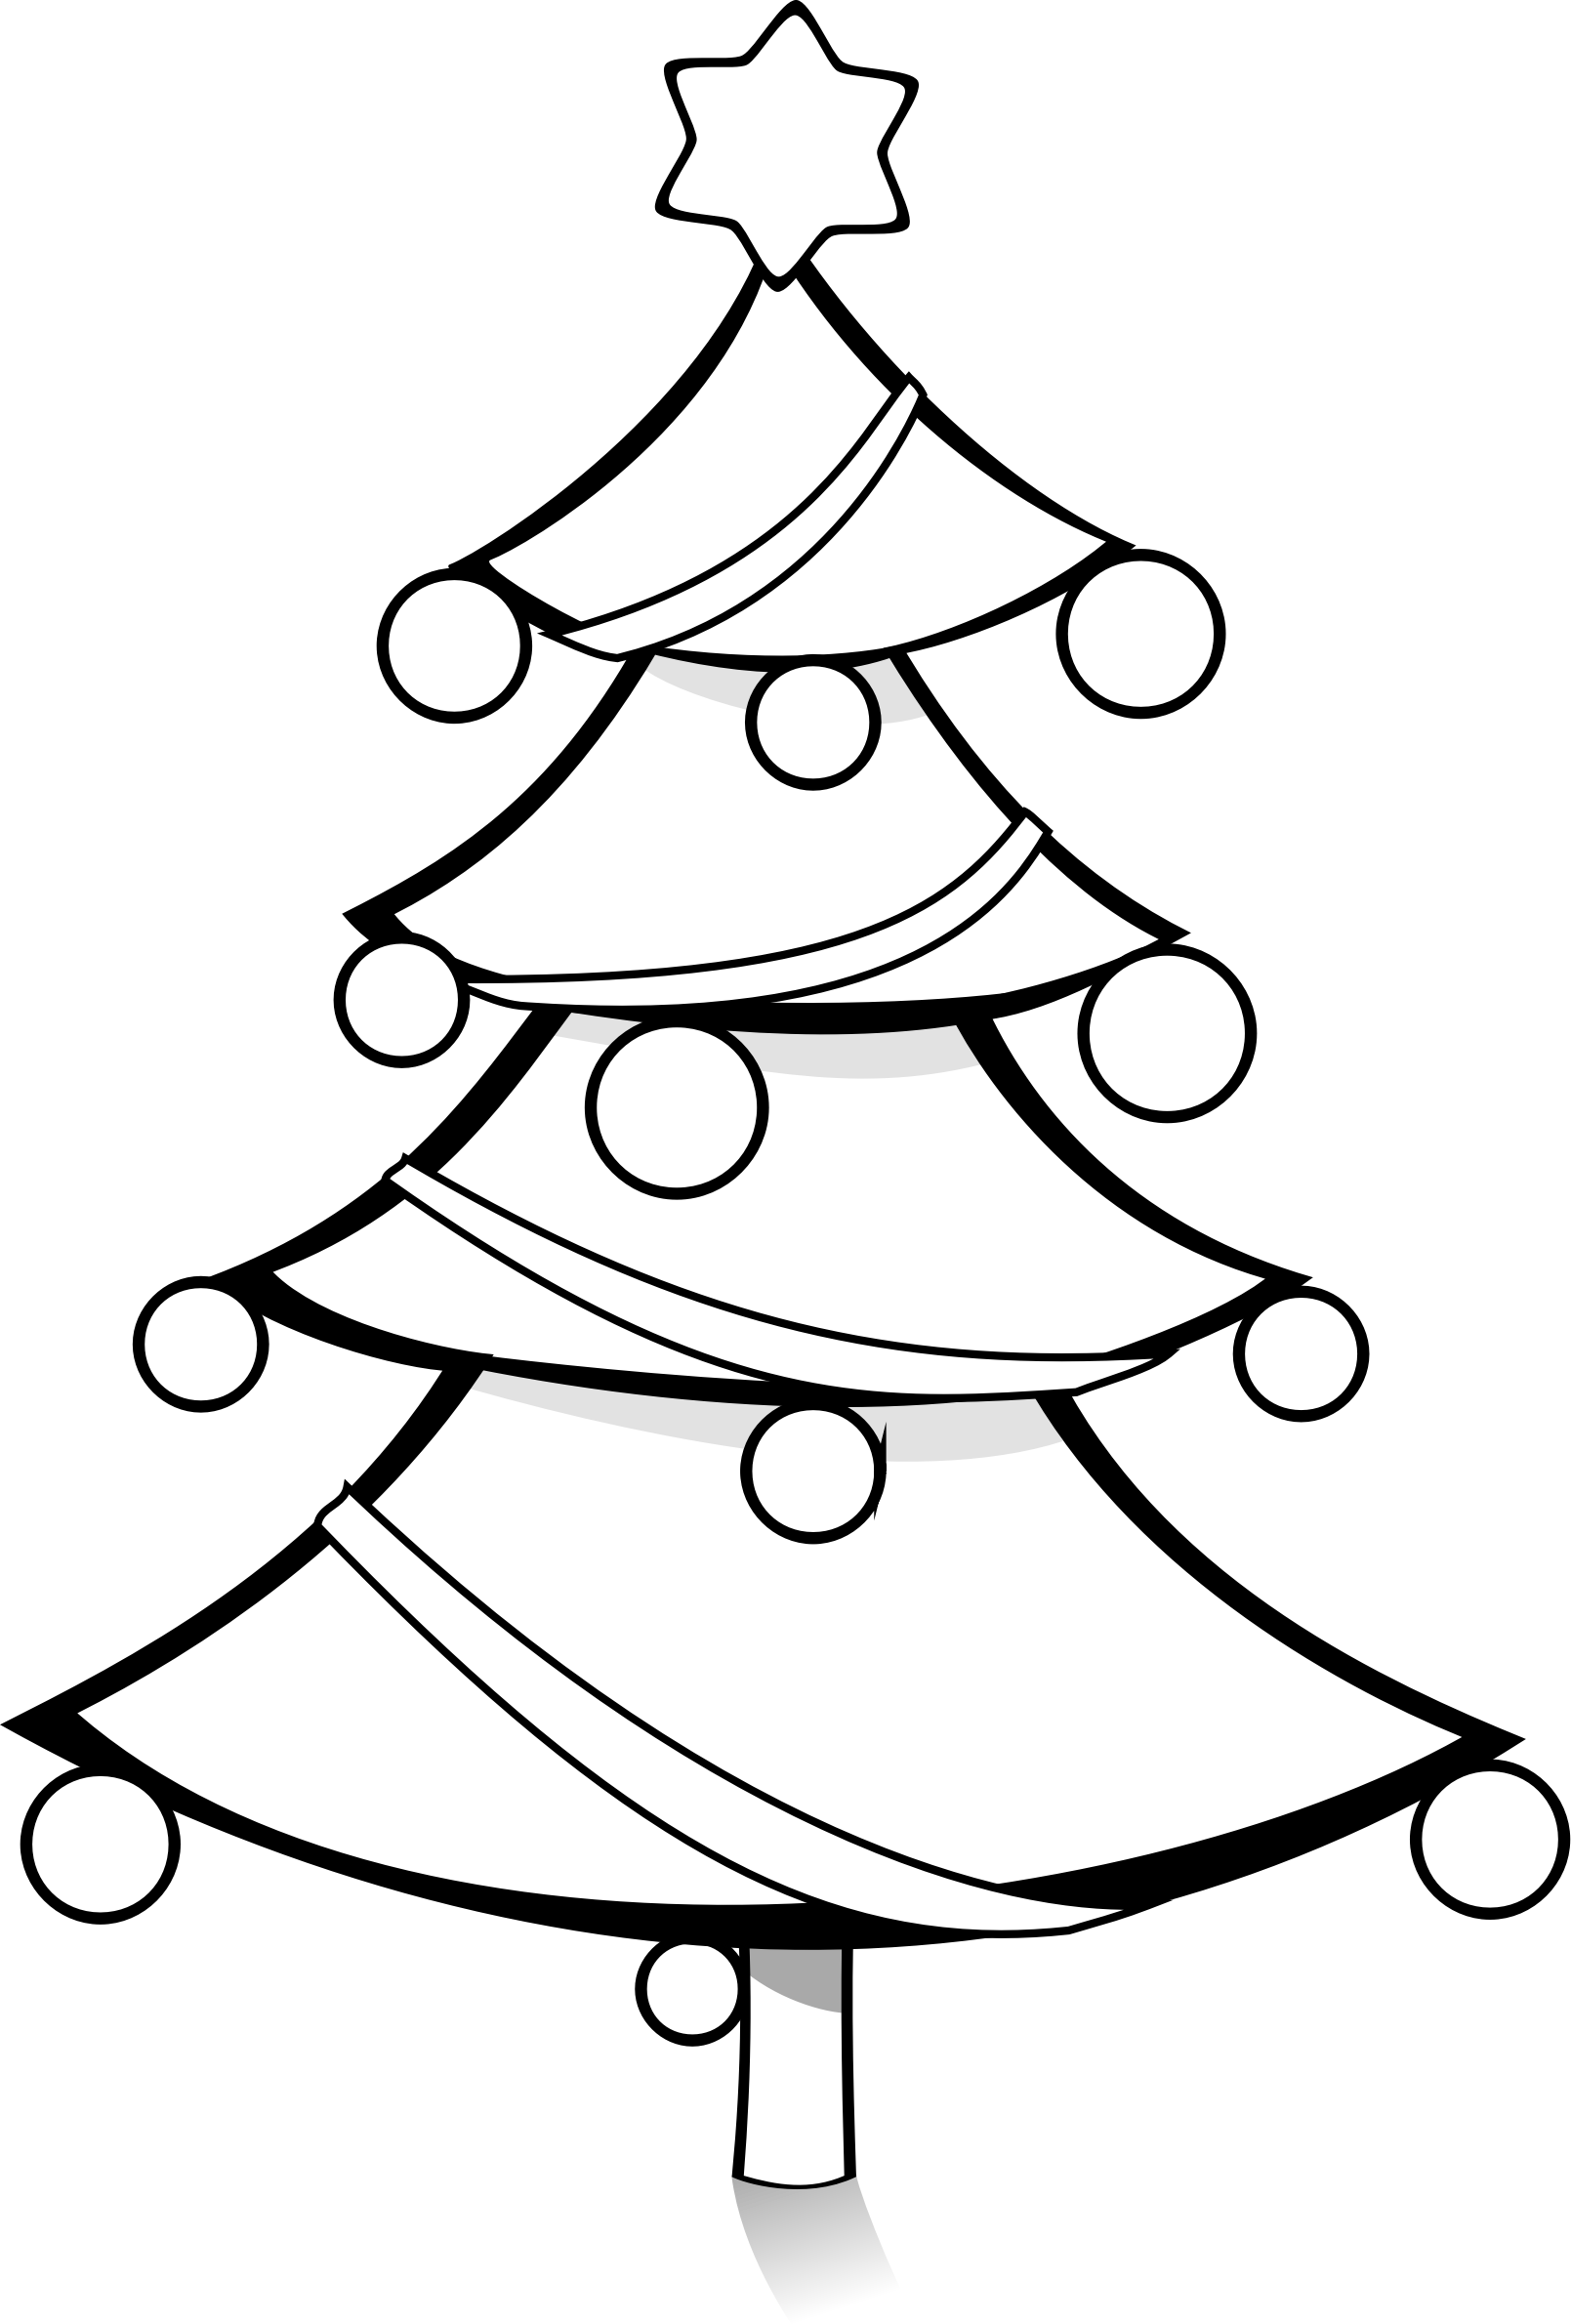 Clipart - Christmas Tree Coloring Page